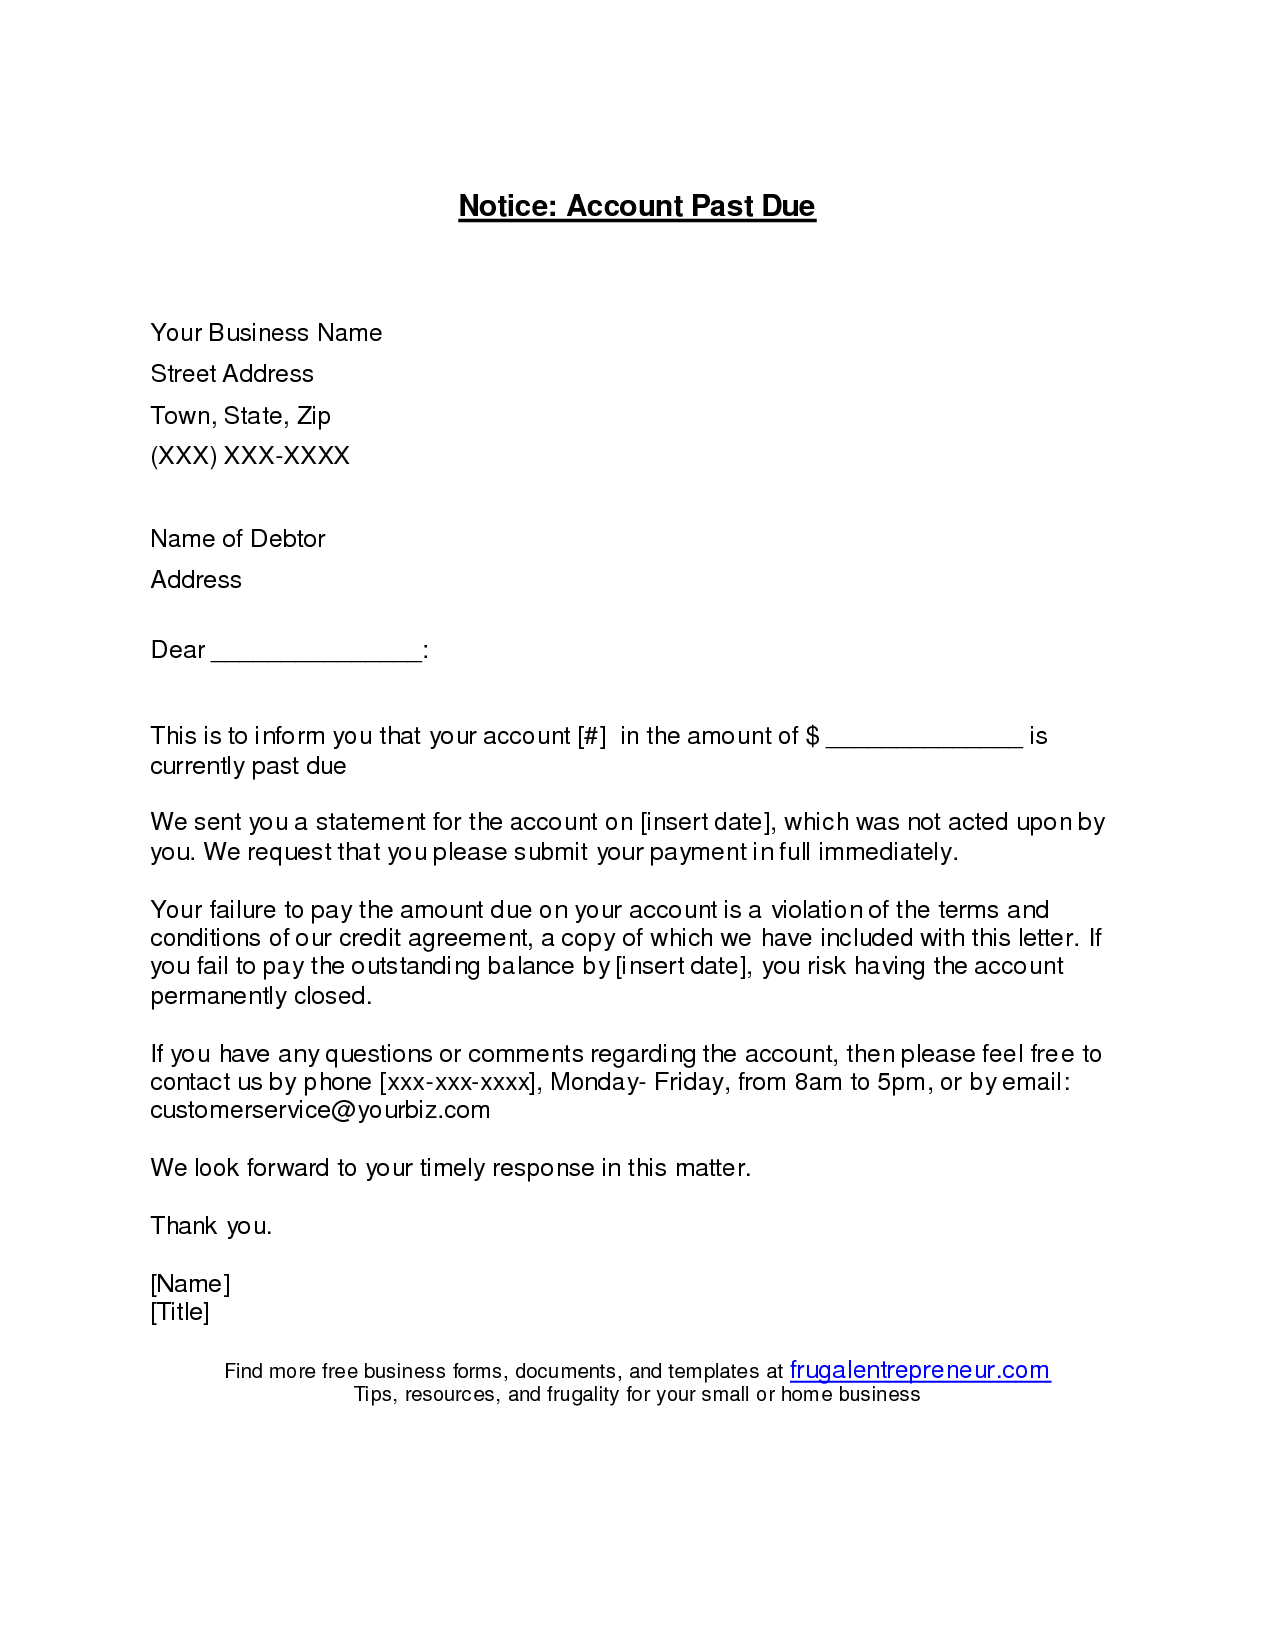 Past Due Invoice Letter Invoice Masqvcfo Small Business Owner